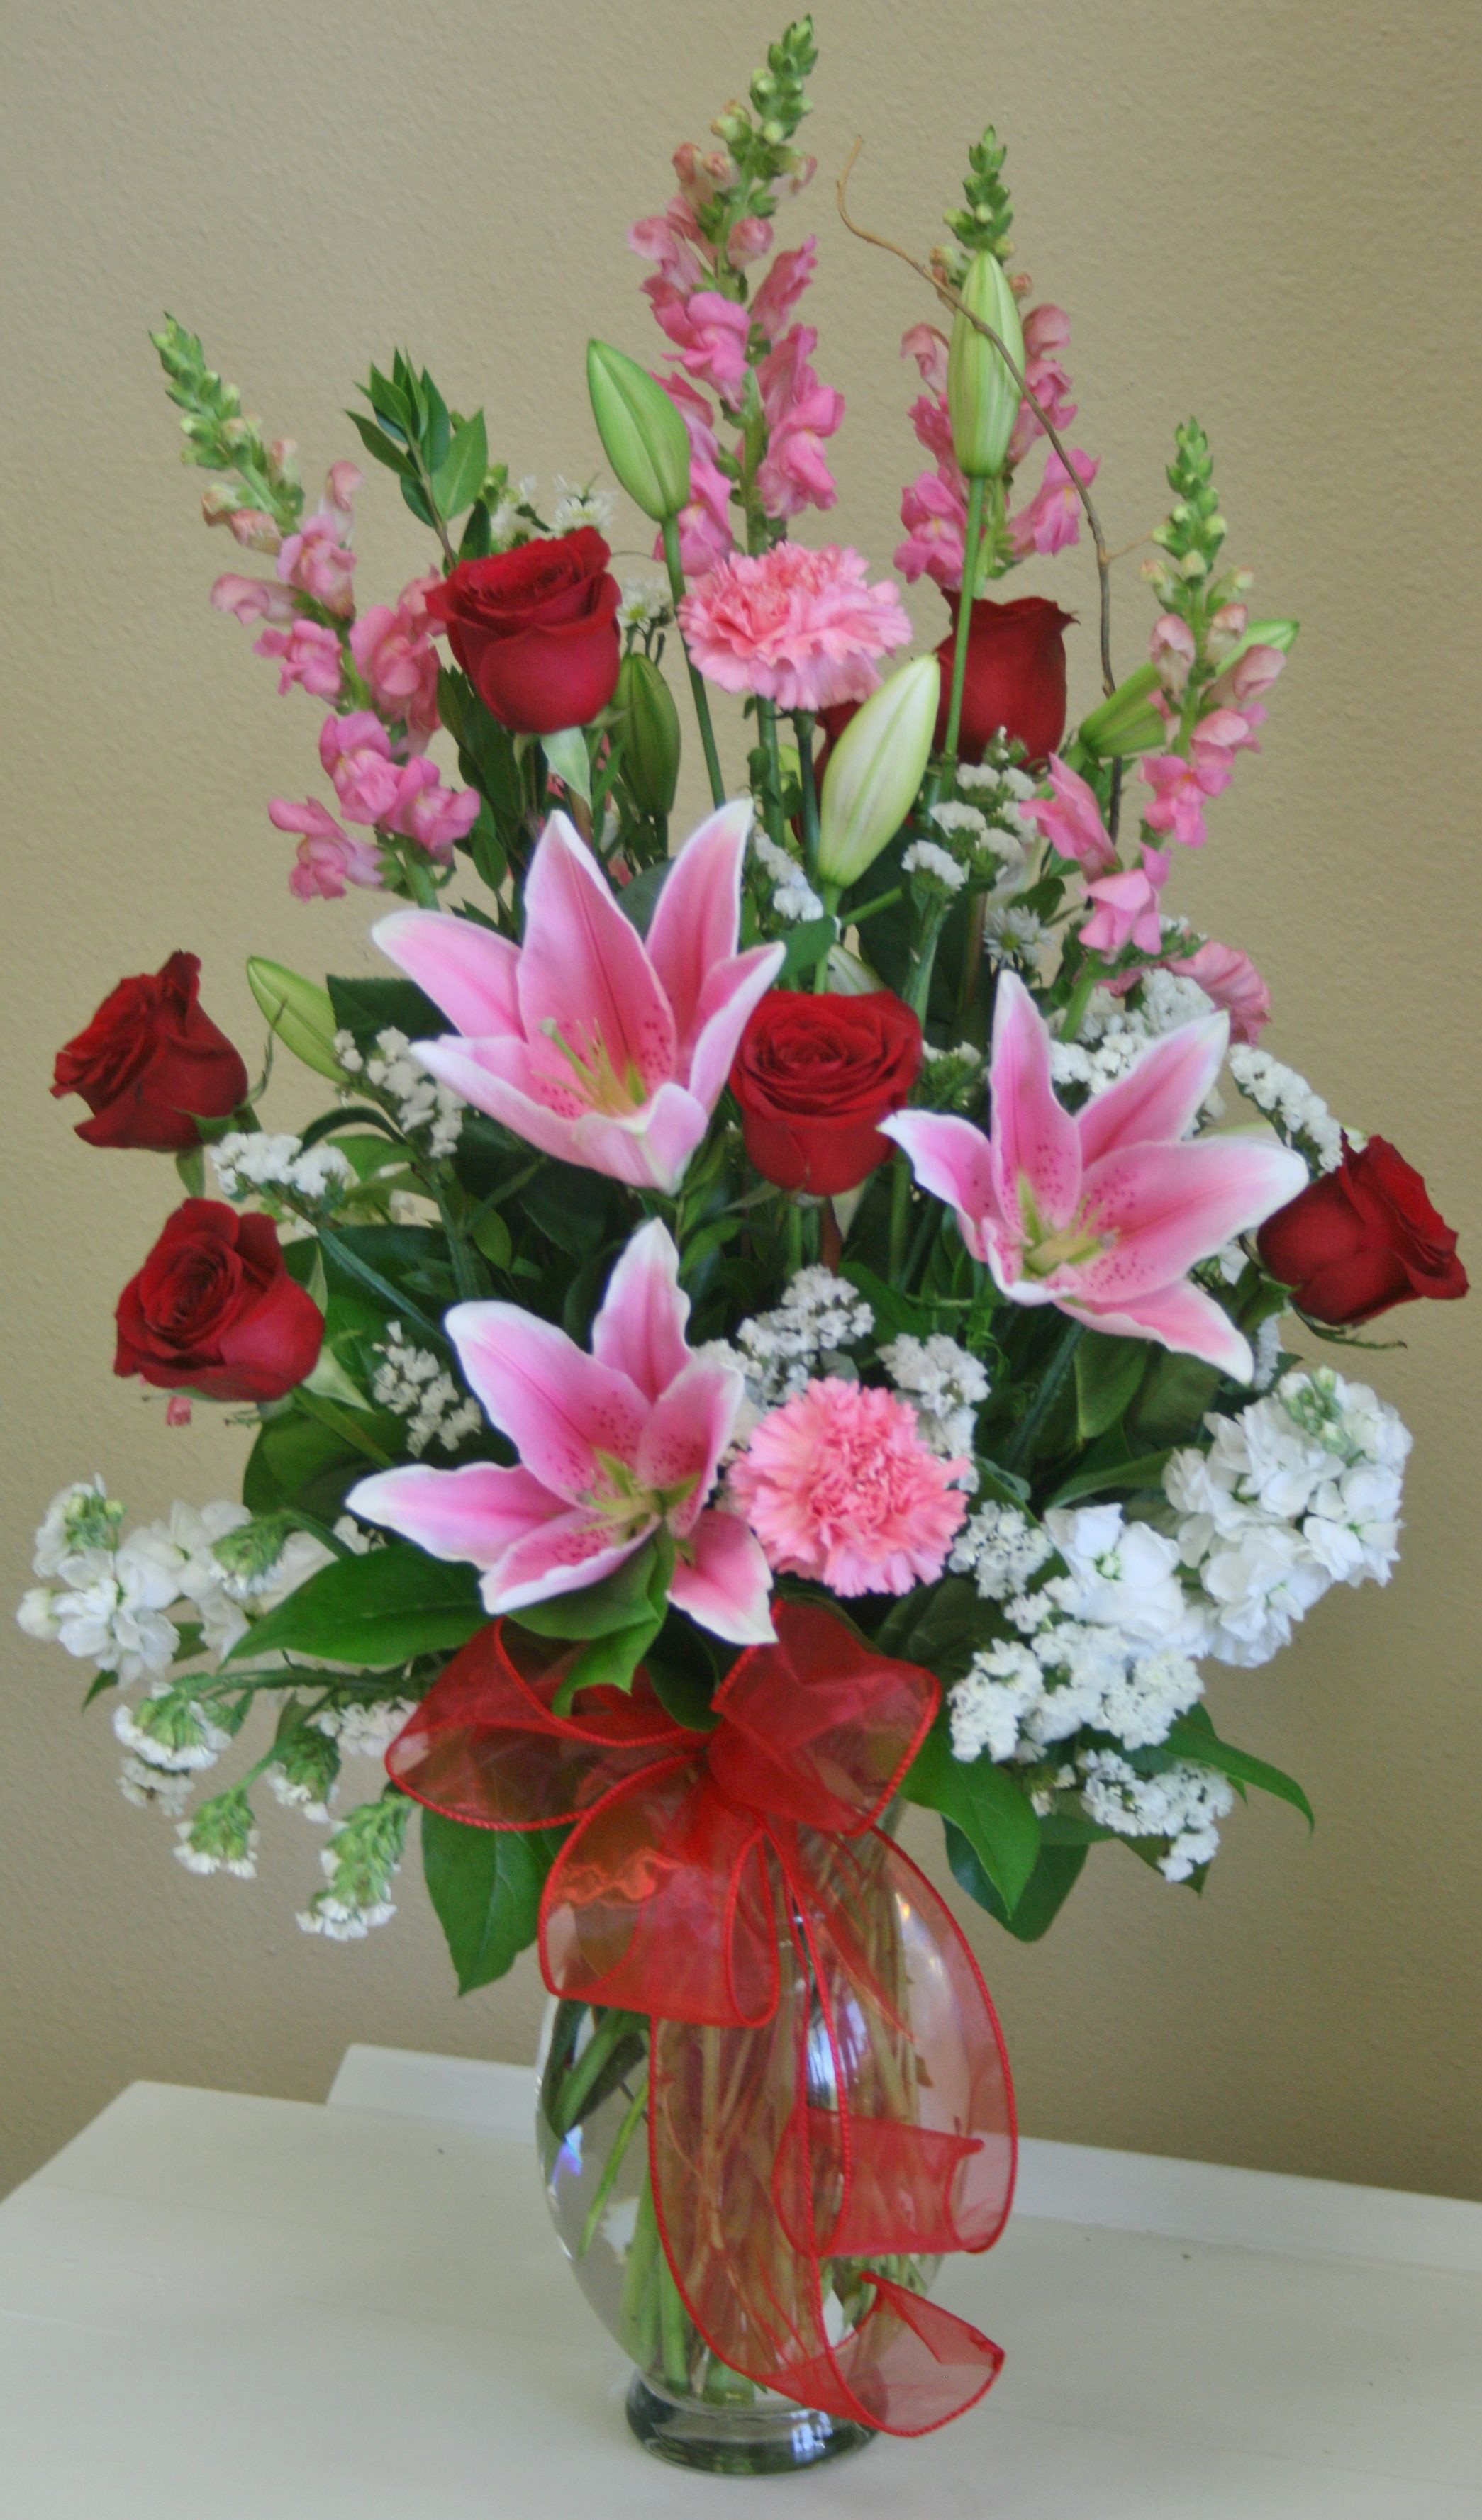 personalized vase flower delivery of 6 best of birthday flowers delivery pics best roses flower for a romantic red white and pink flower arrangement by your local